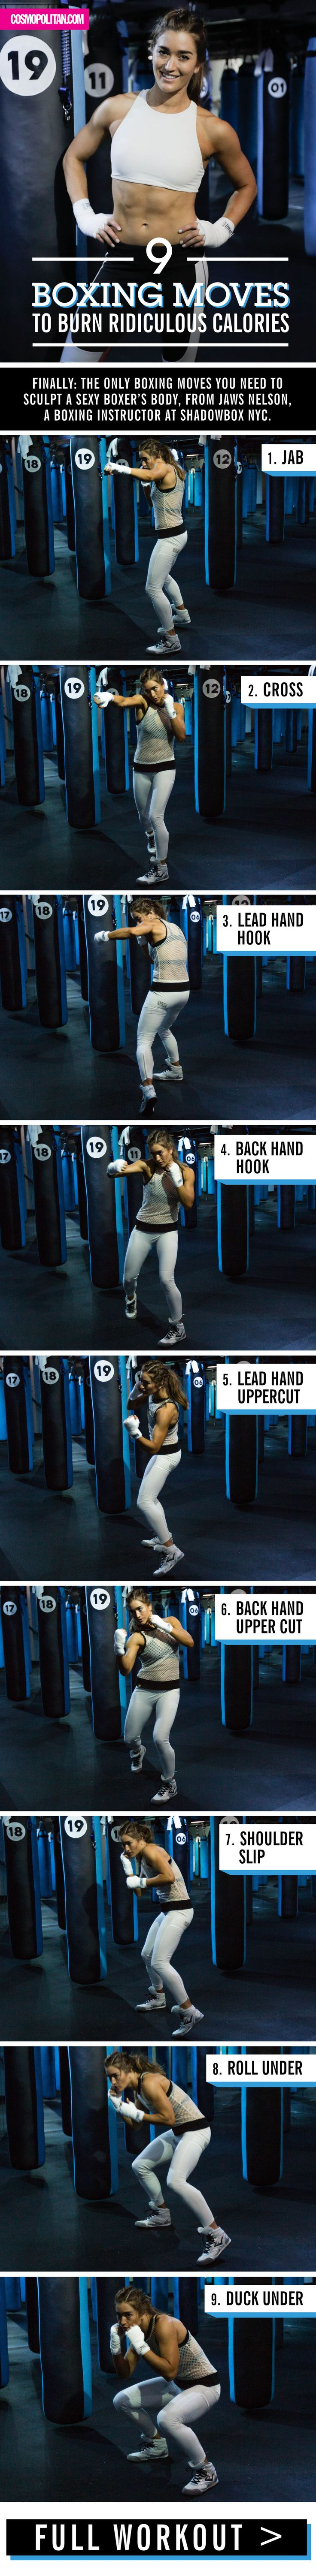 9 BOXING MOVES: The moves in this workout routine, created by Jaws Nelson from Shadowbox NYC, burn a crazy amount of calories! Click through for the full workout, an instructional video, and fun gifs that will teach you all the moves you need to know!